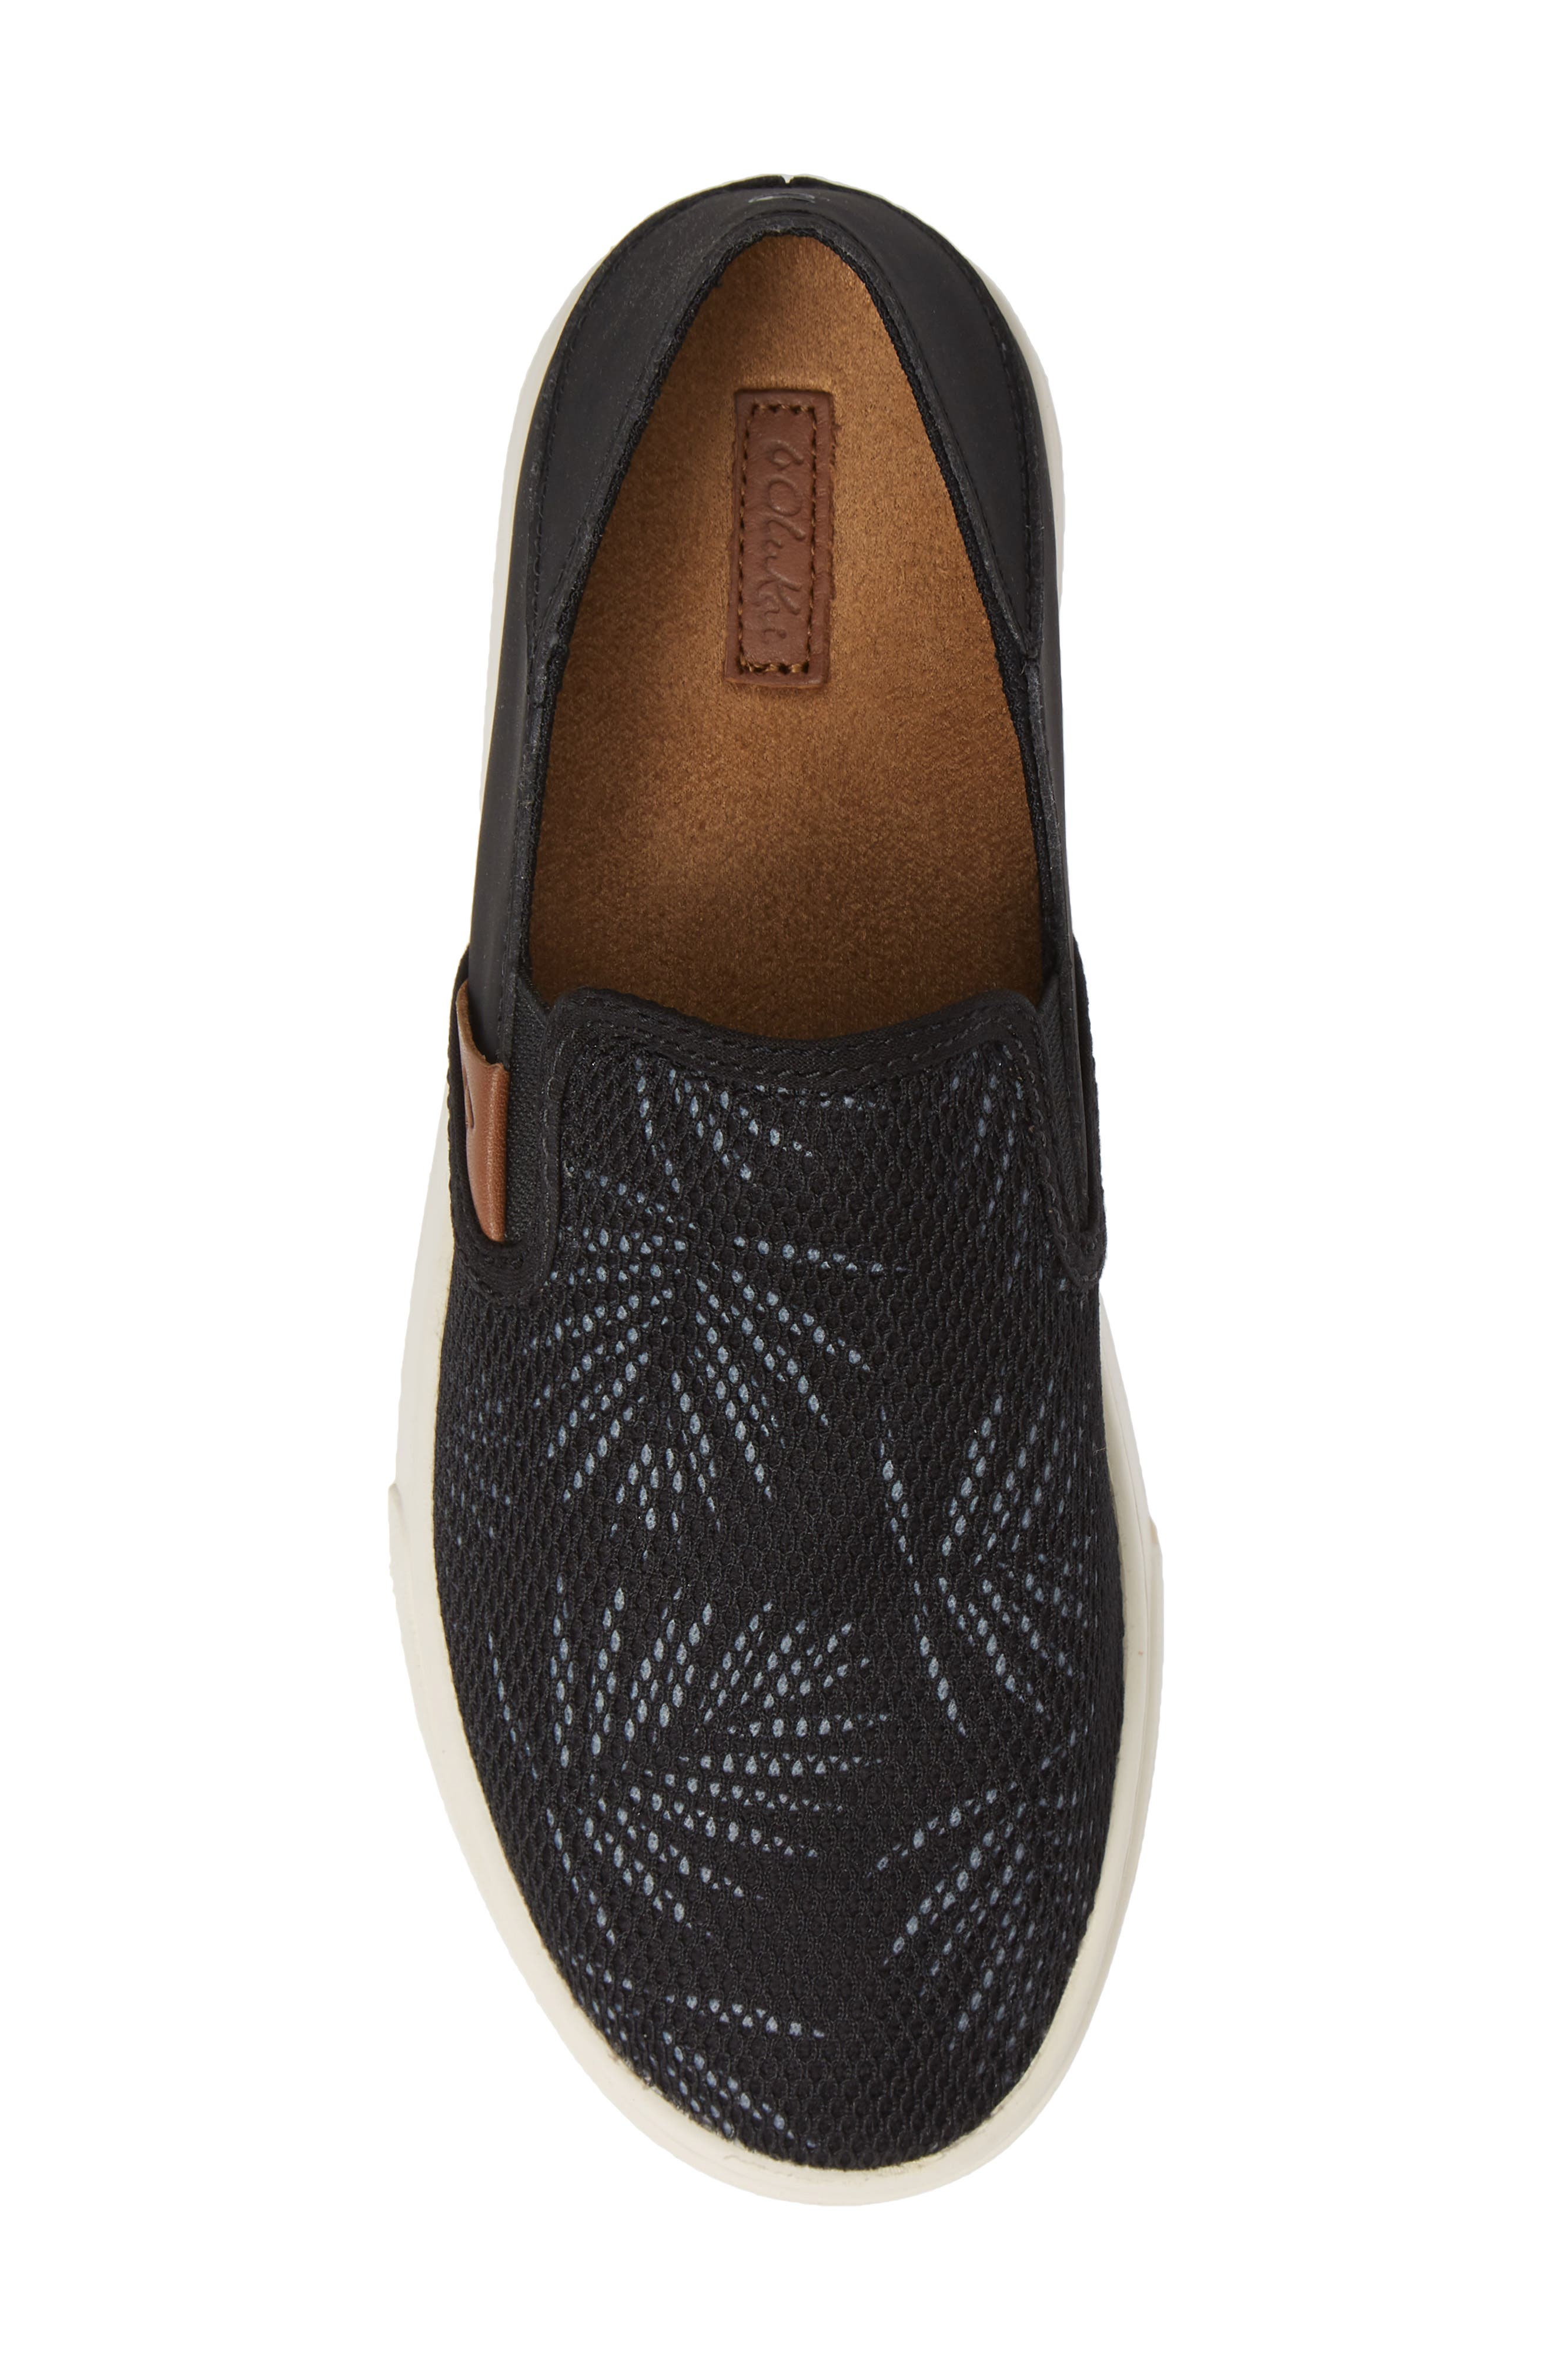 'Pehuea' Slip-On Sneaker,                             Alternate thumbnail 4, color,                             Black/ Palm Fabric